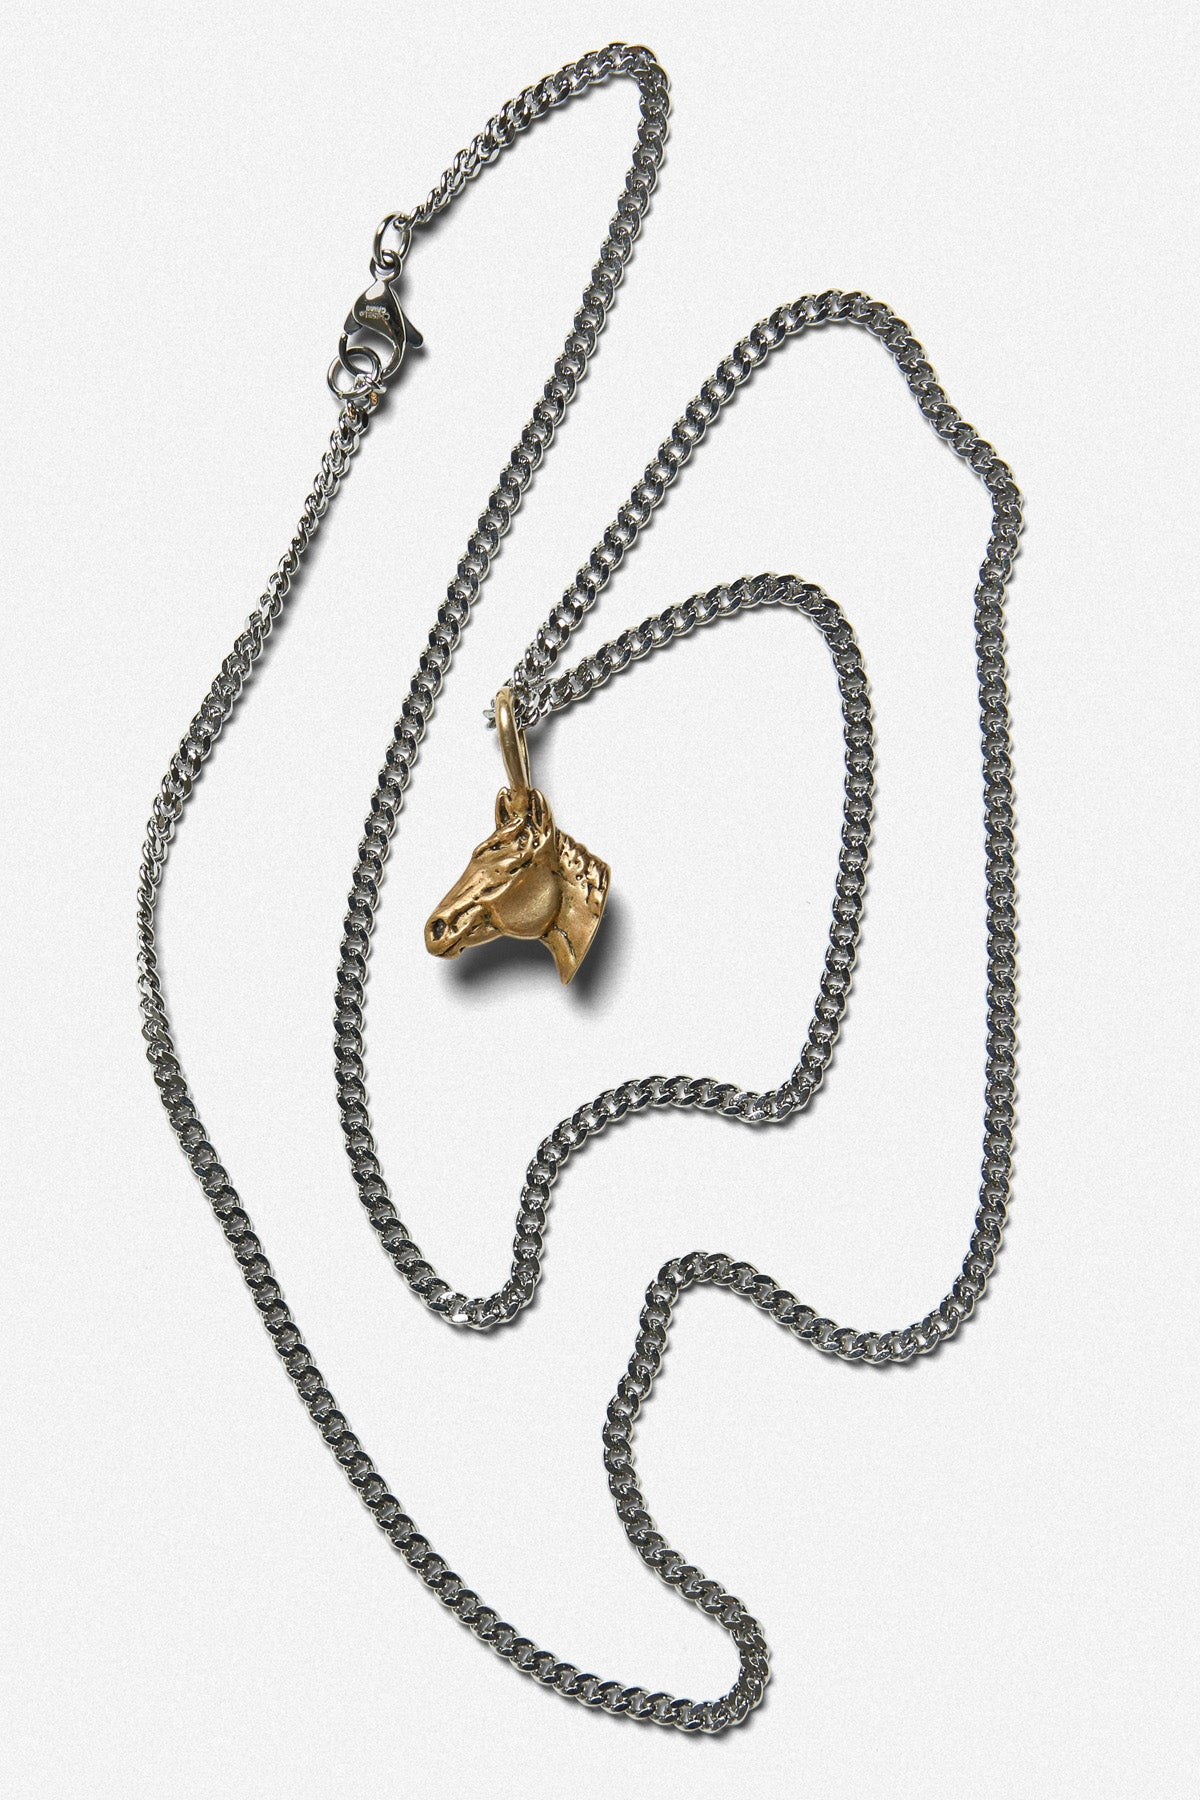 HORSE CHARM NECKLACE IN GOLD BRONZE - Fortune Goods